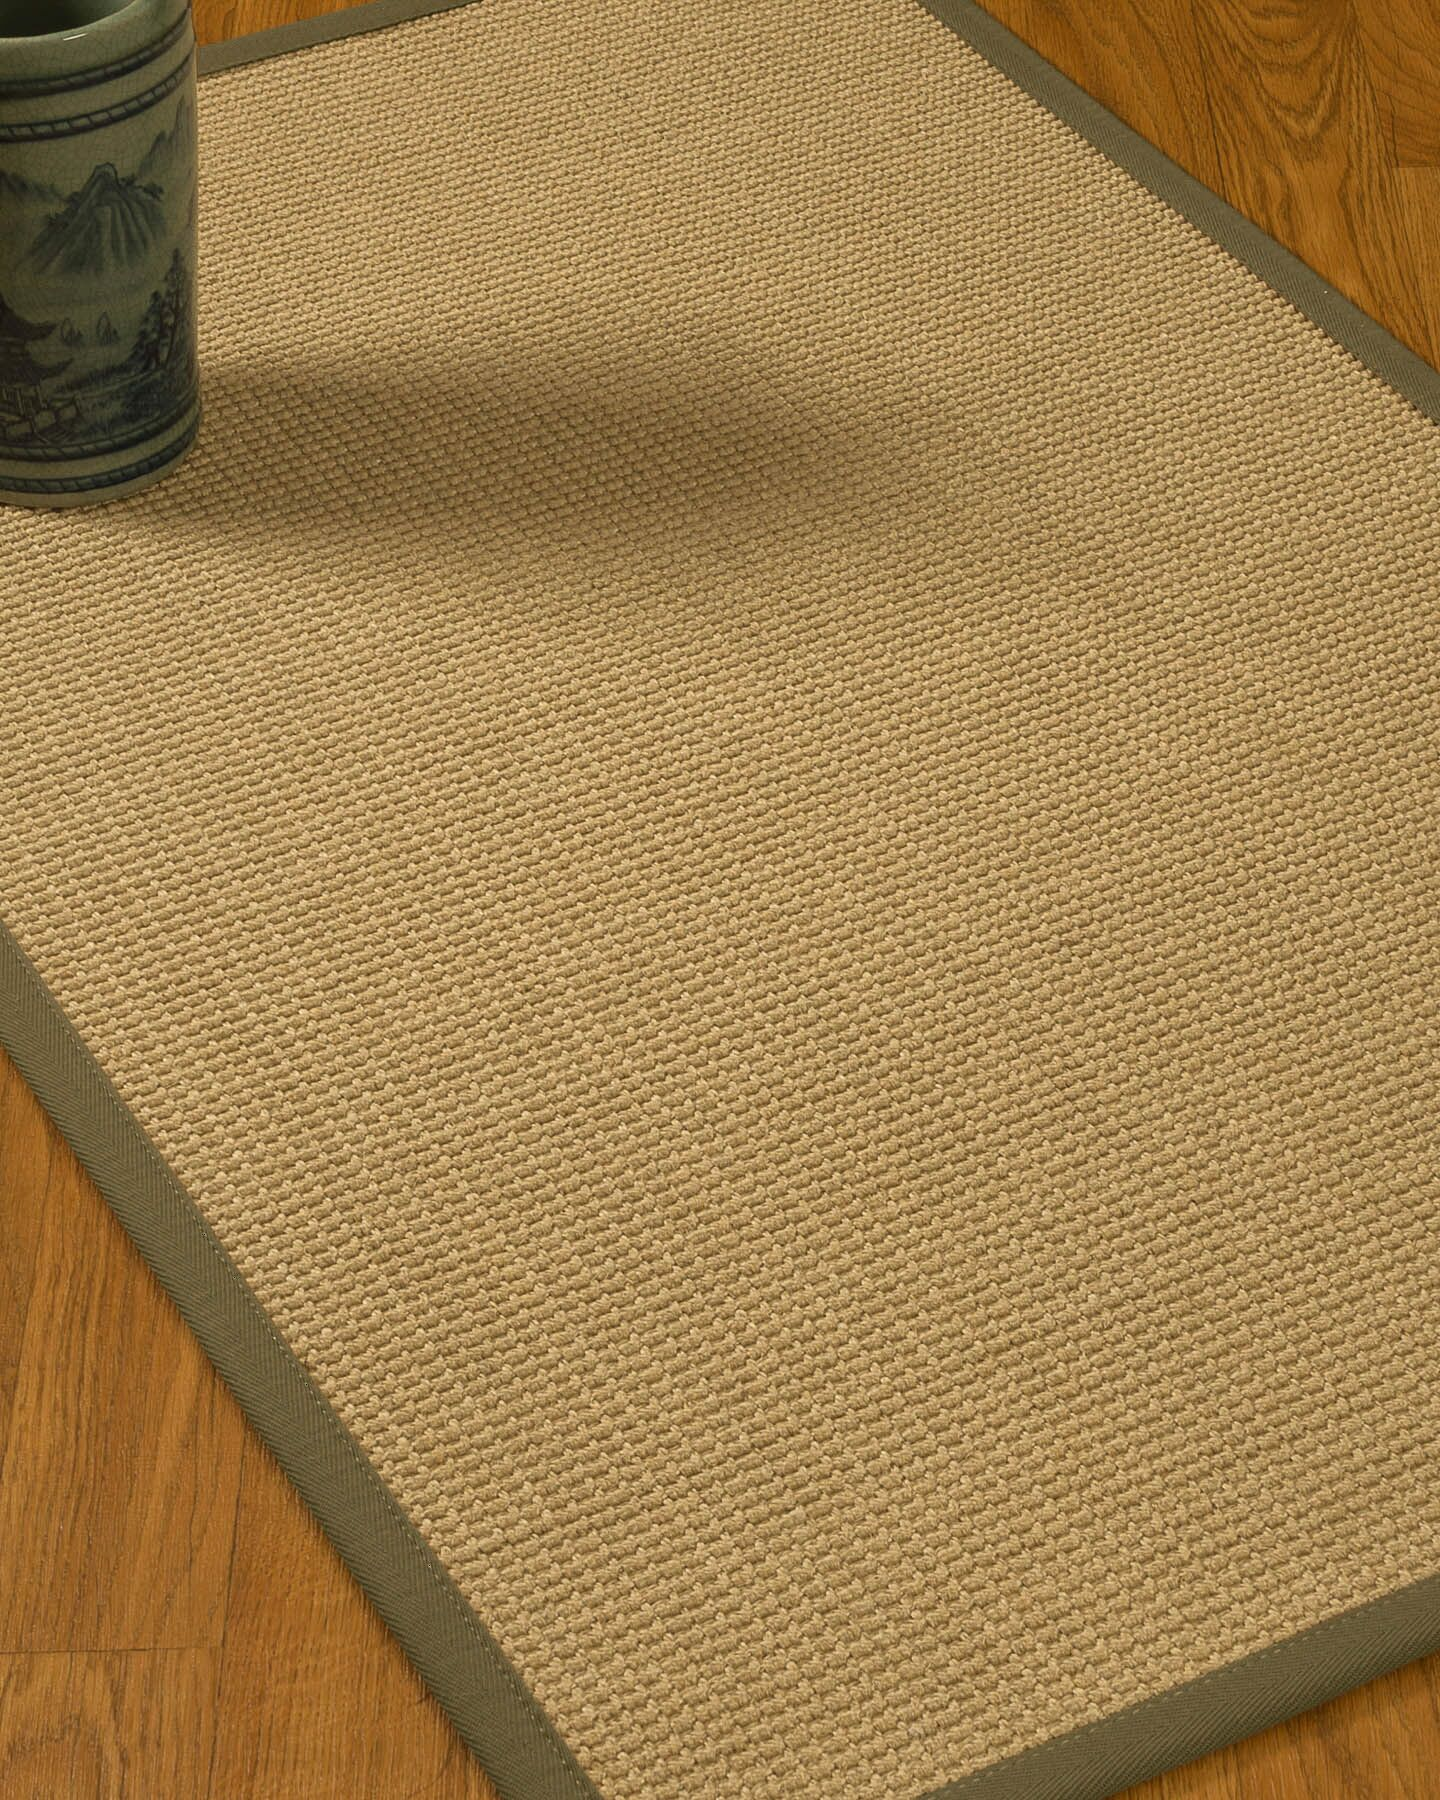 Jacobs Border Hand-Woven Beige/Fossil Area Rug Rug Pad Included: No, Rug Size: Runner 2'6